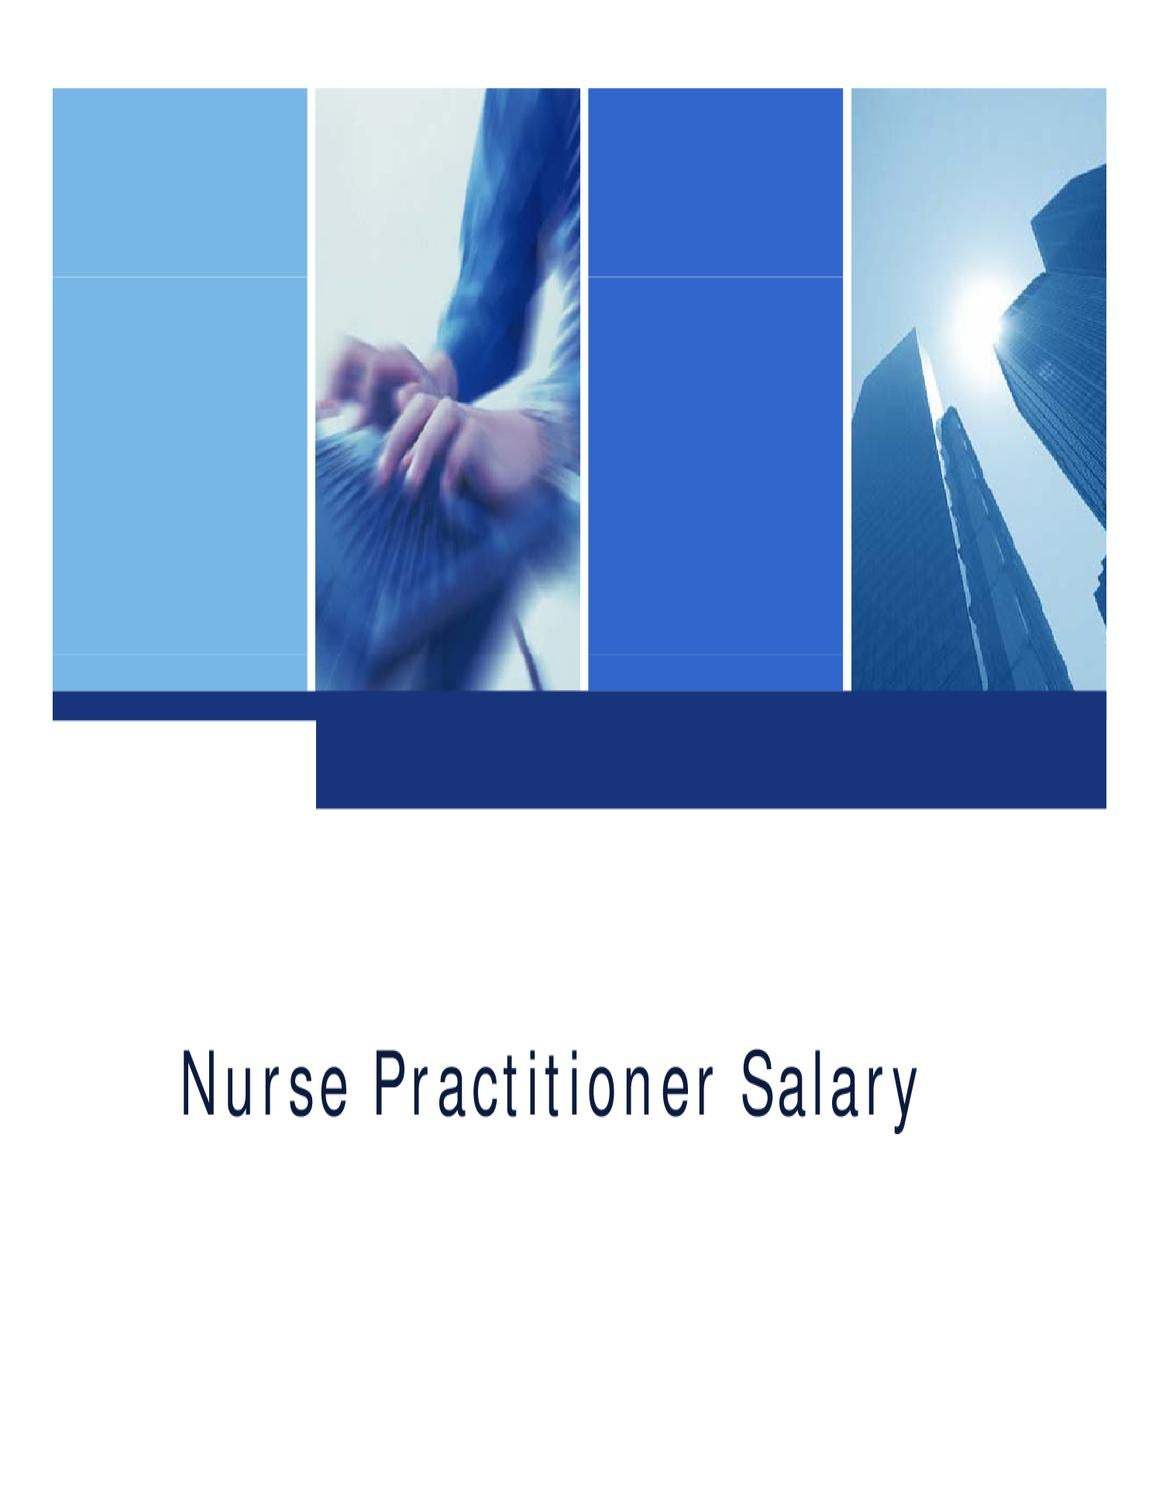 Nurse Practitioner Salary by John Carson